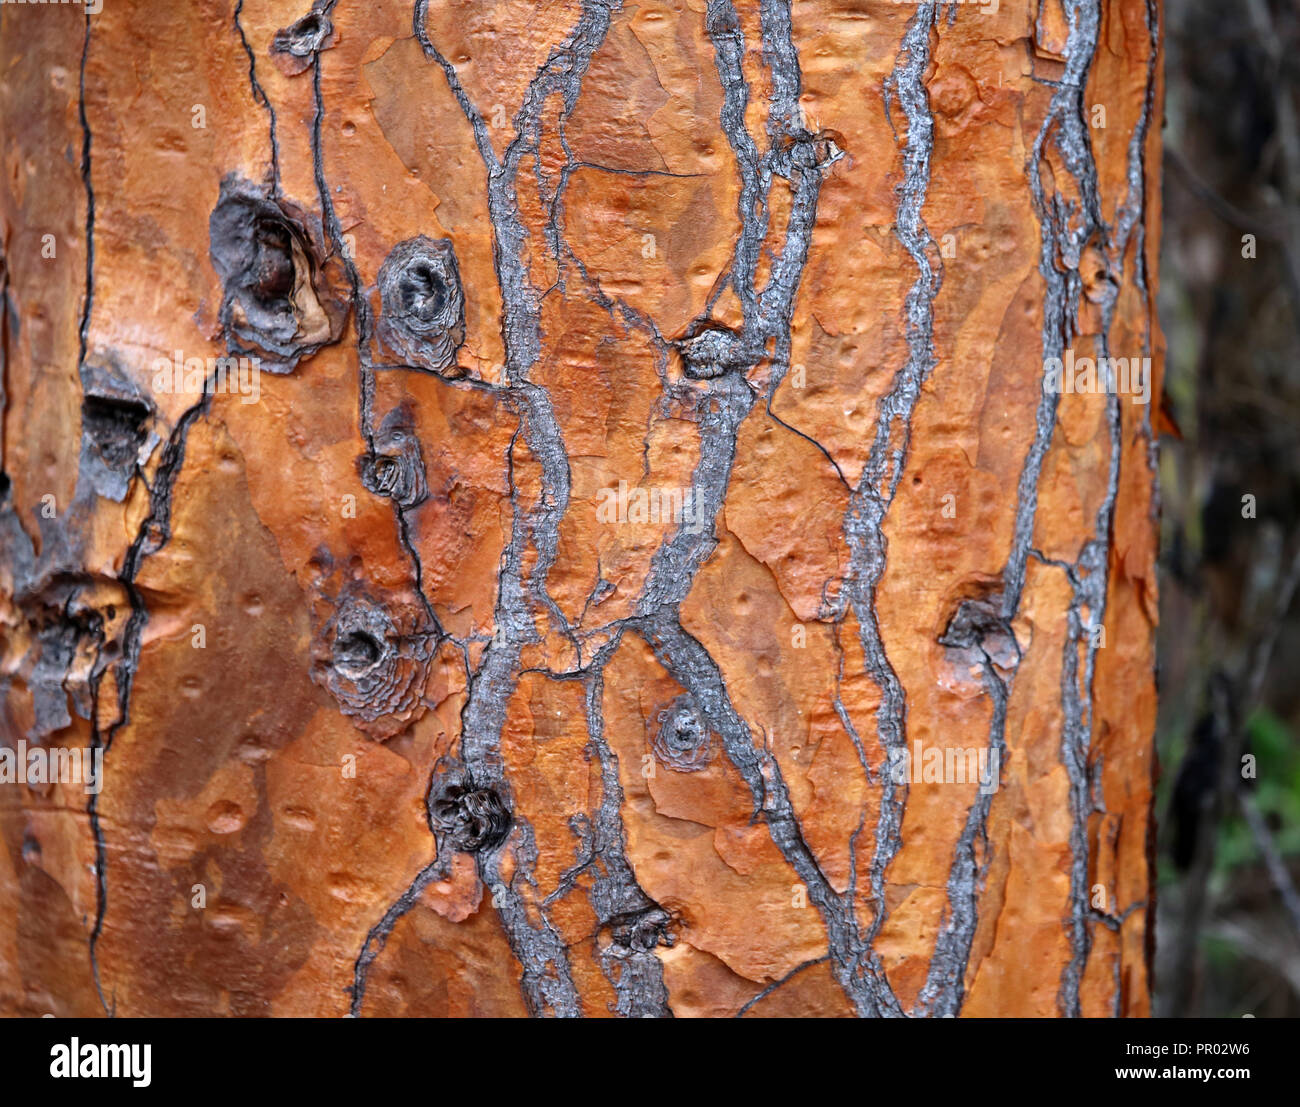 detail of cactus tree bark texture - Stock Image